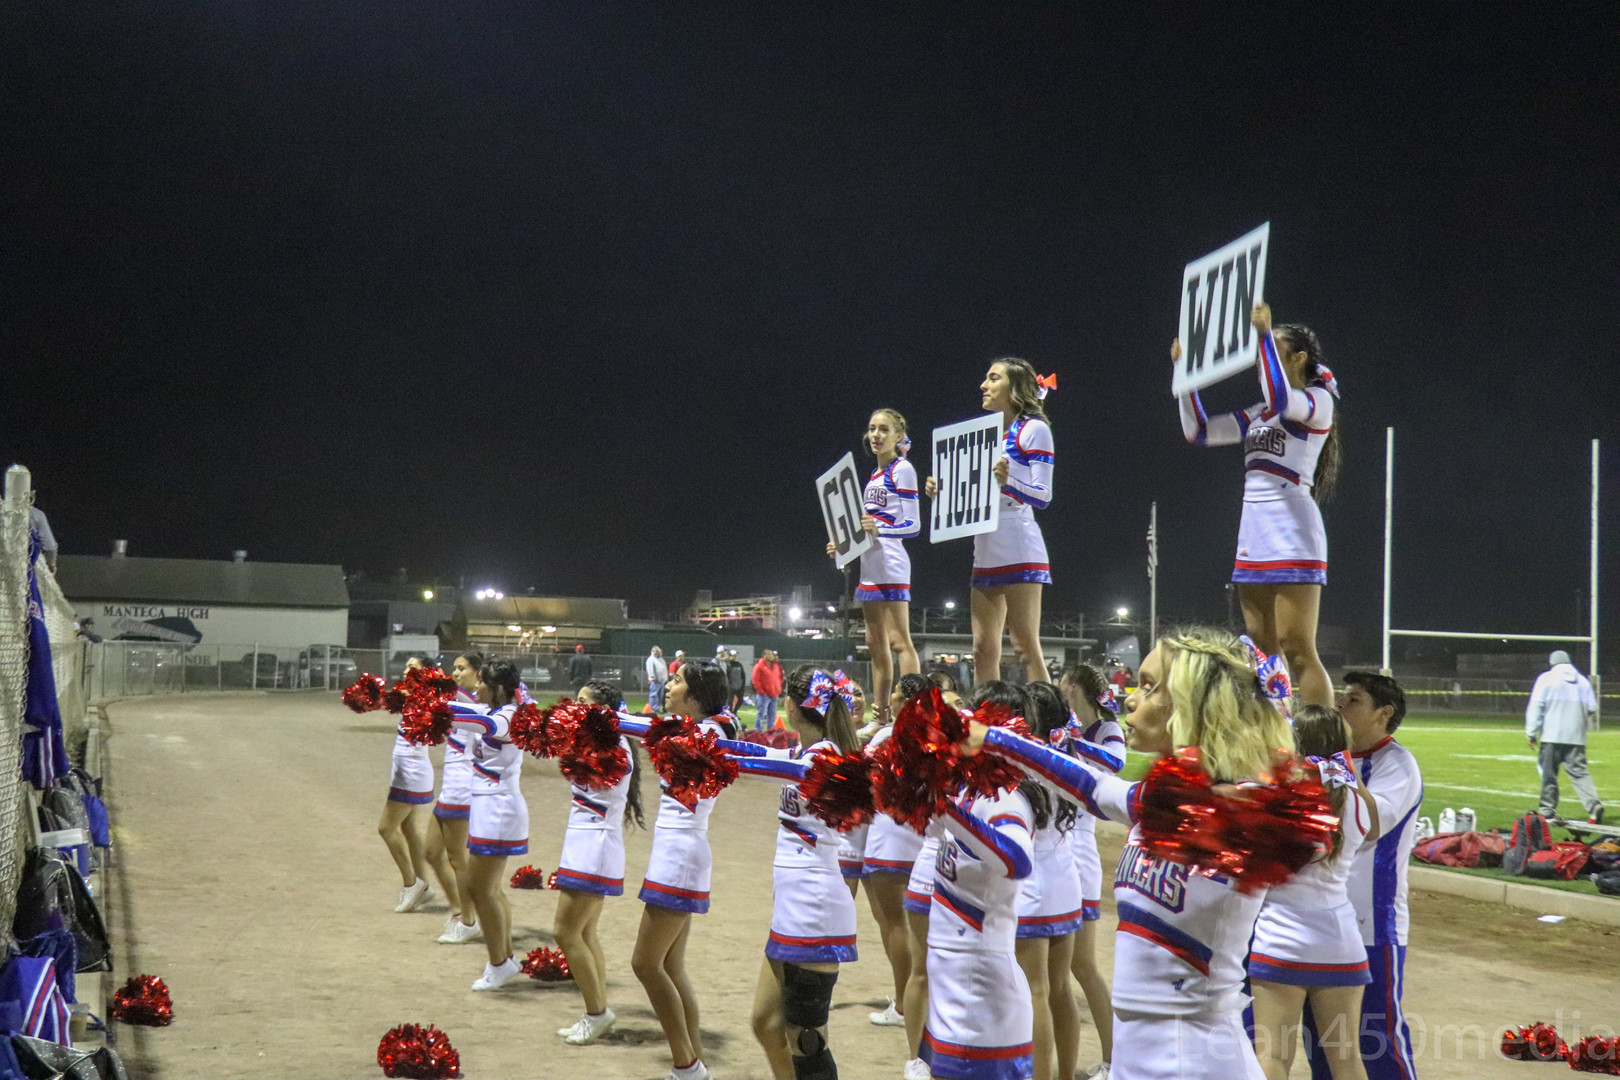 EU Vs. Manteca [Cheer]-13.JPG